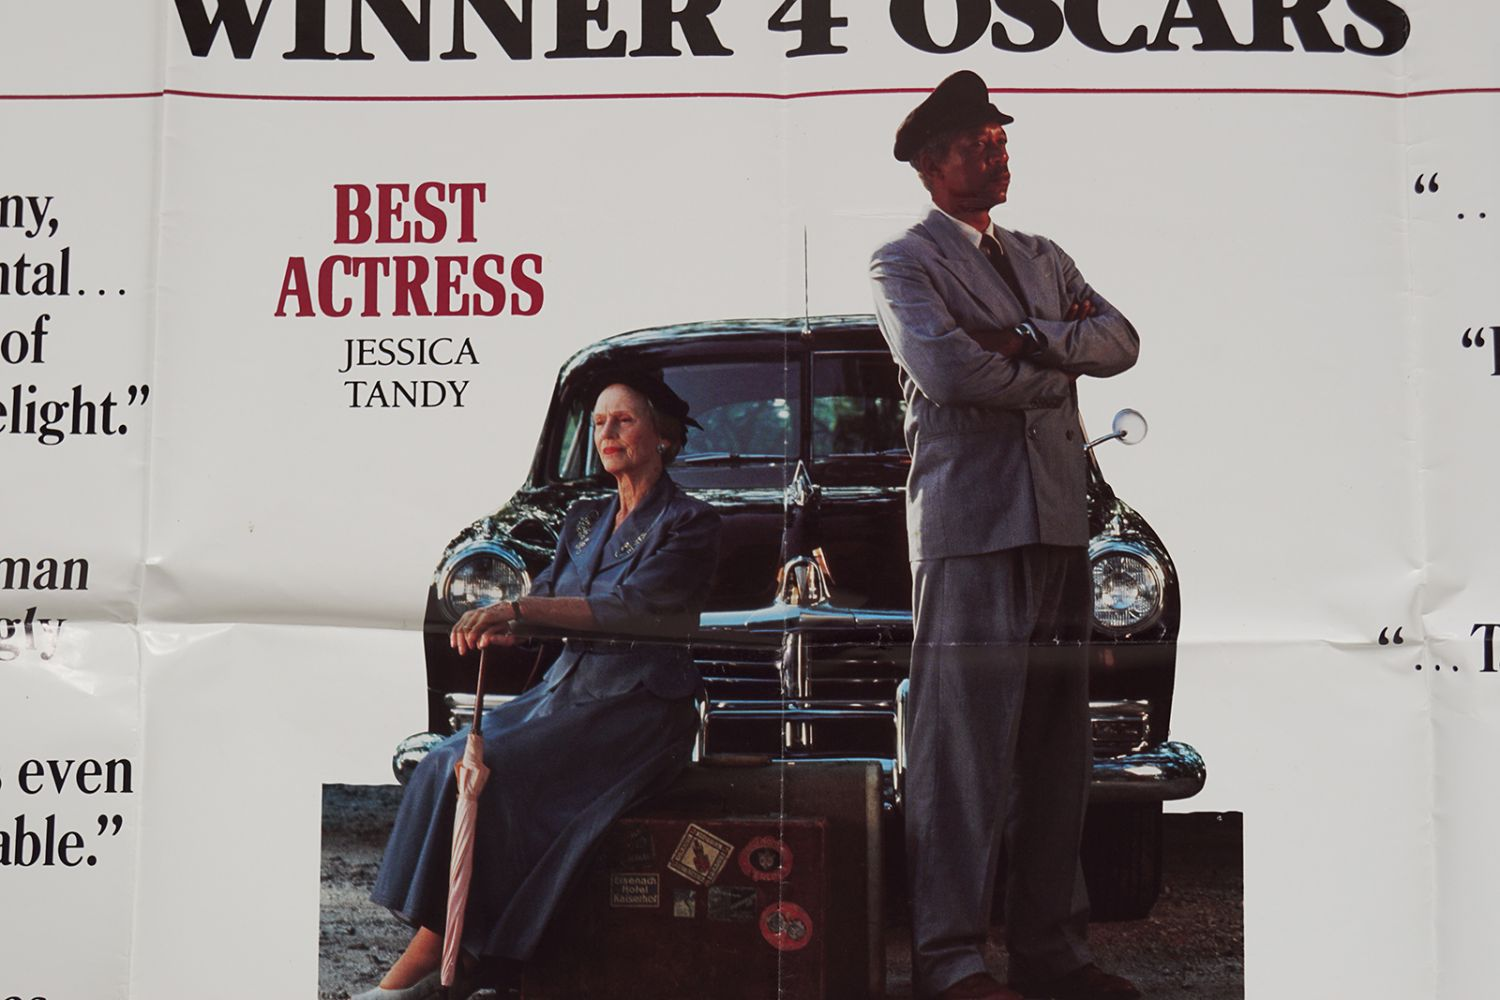 DRIVING MISS DAISY - Image 3 of 3